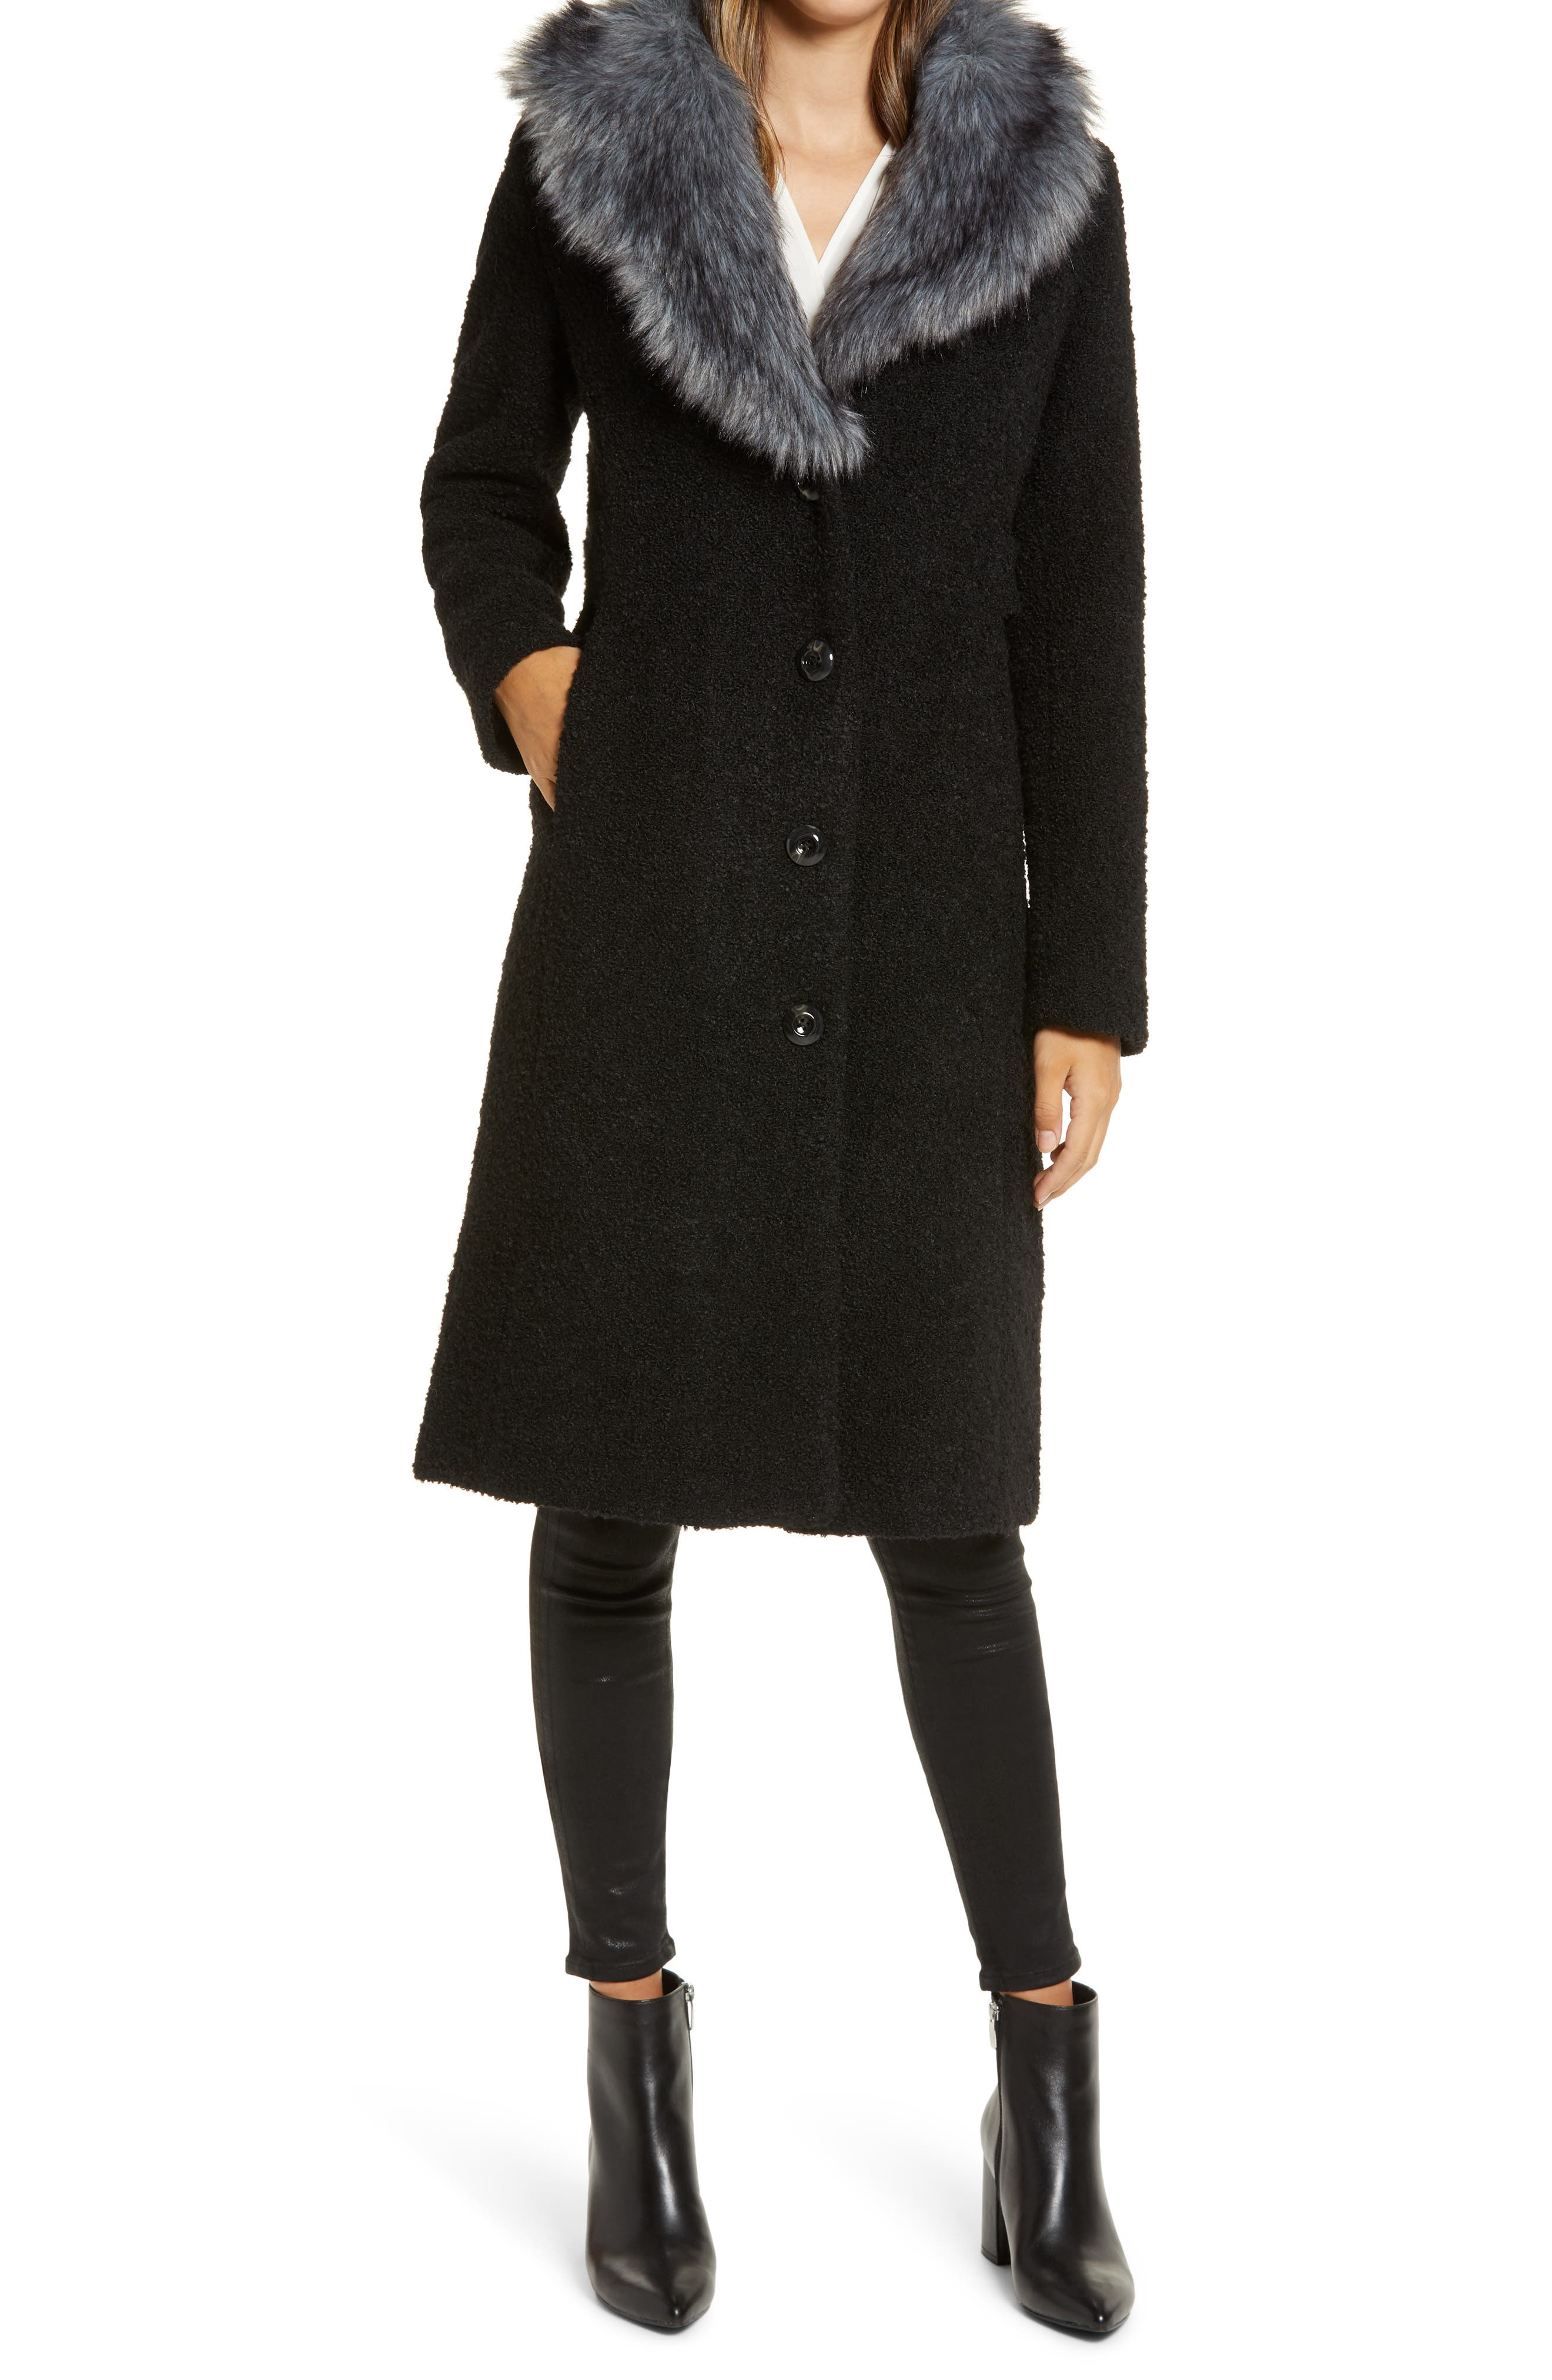 Vintage Coats & Jackets | Retro Coats and Jackets Womens Gallery Wool Blend Coat With Removable Faux Fur Collar $174.90 AT vintagedancer.com